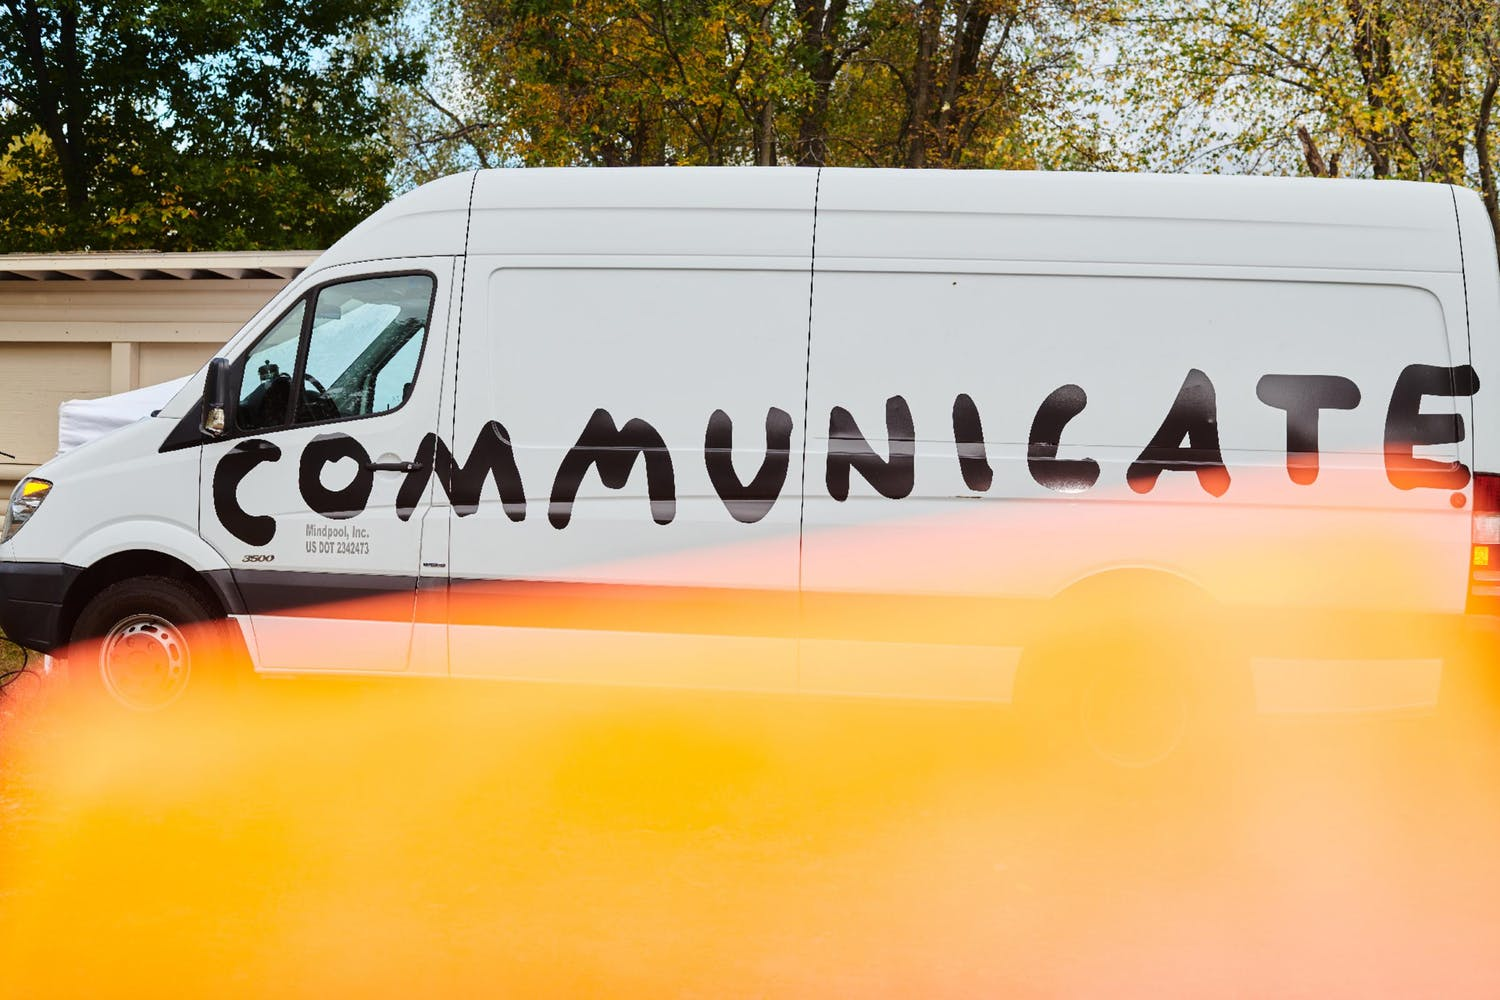 """Image of white van with the word """"Communicate"""" painted on it"""